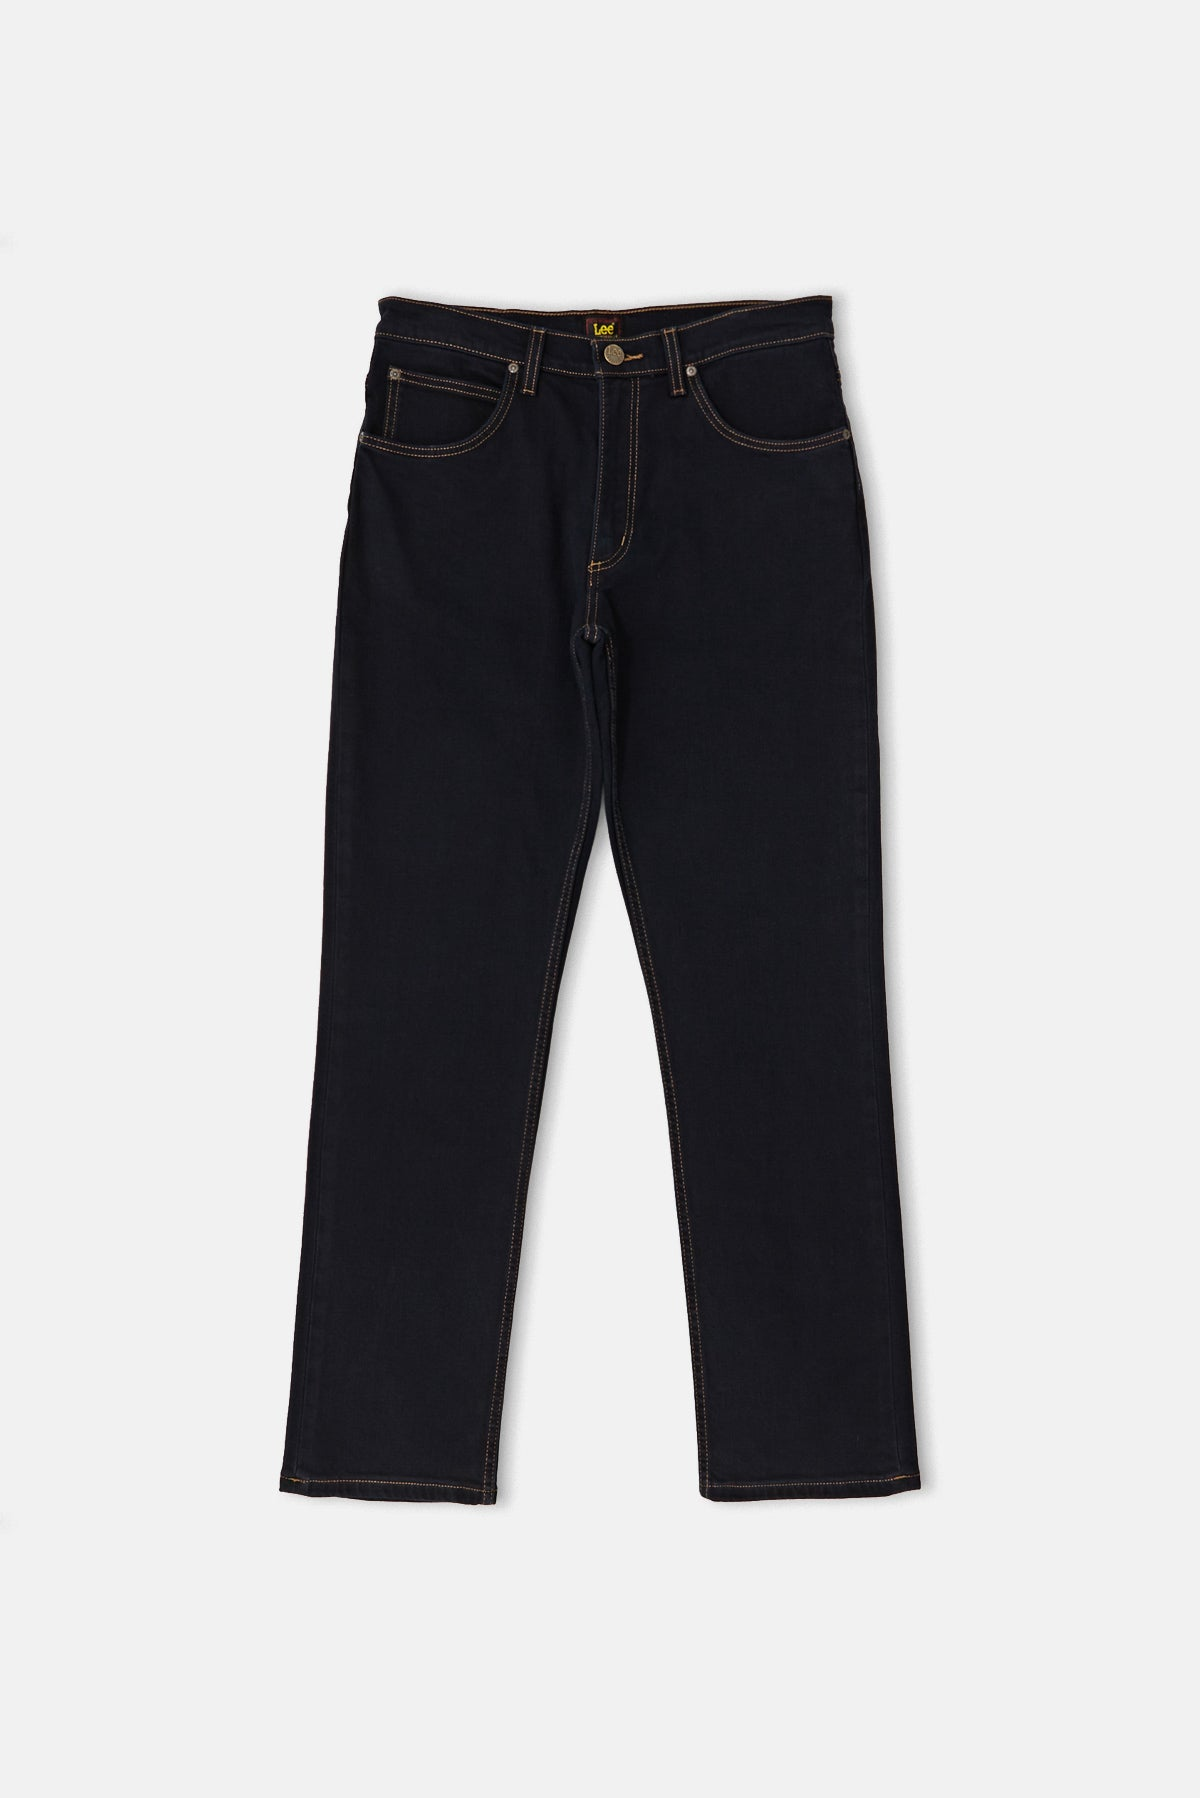 9819bae5e3fba Lee Brooklyn Straight Blue Black Jeans available from Priory